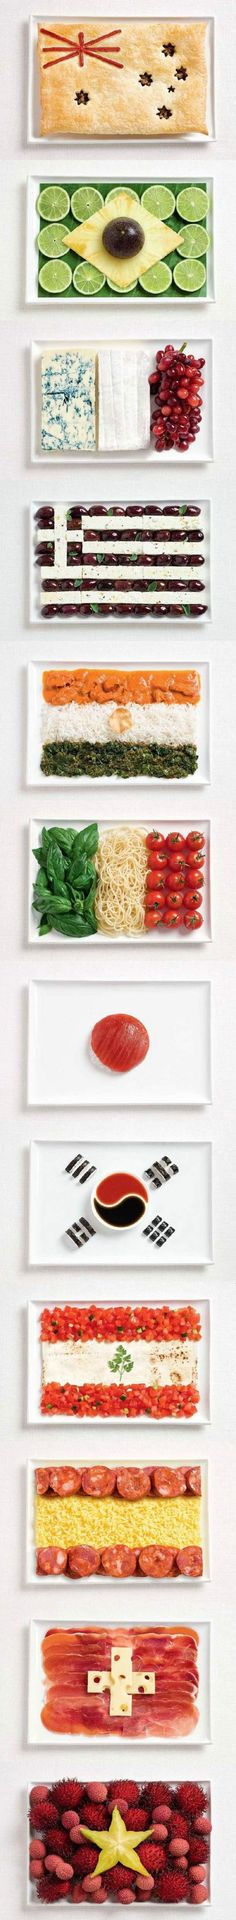 Studying various countries? Design their flag in food--and enjoy!